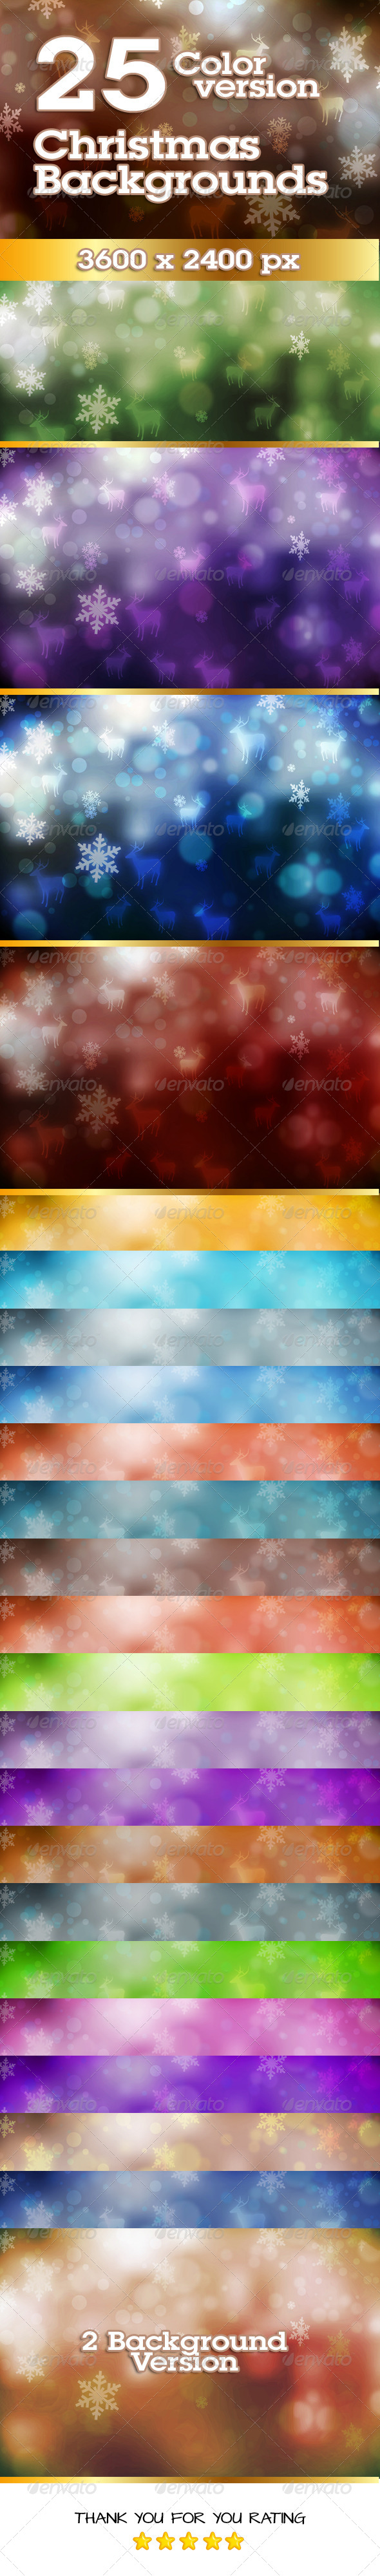 Christmas Background in 25 Colors variations - Backgrounds Graphics